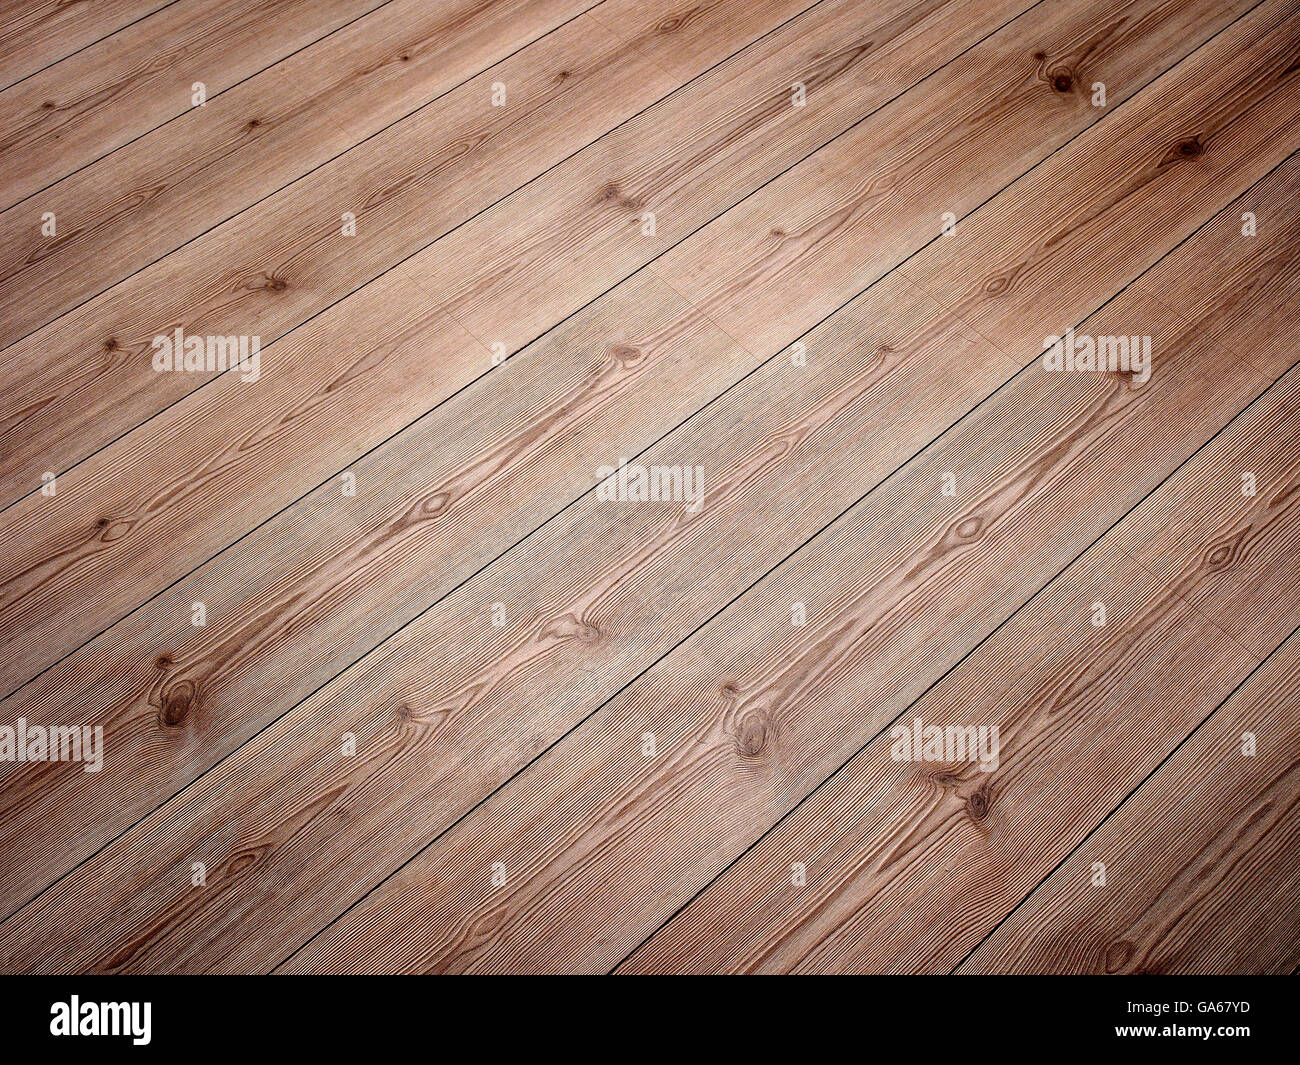 Wood flooring with diagonal boards. Stock Photo